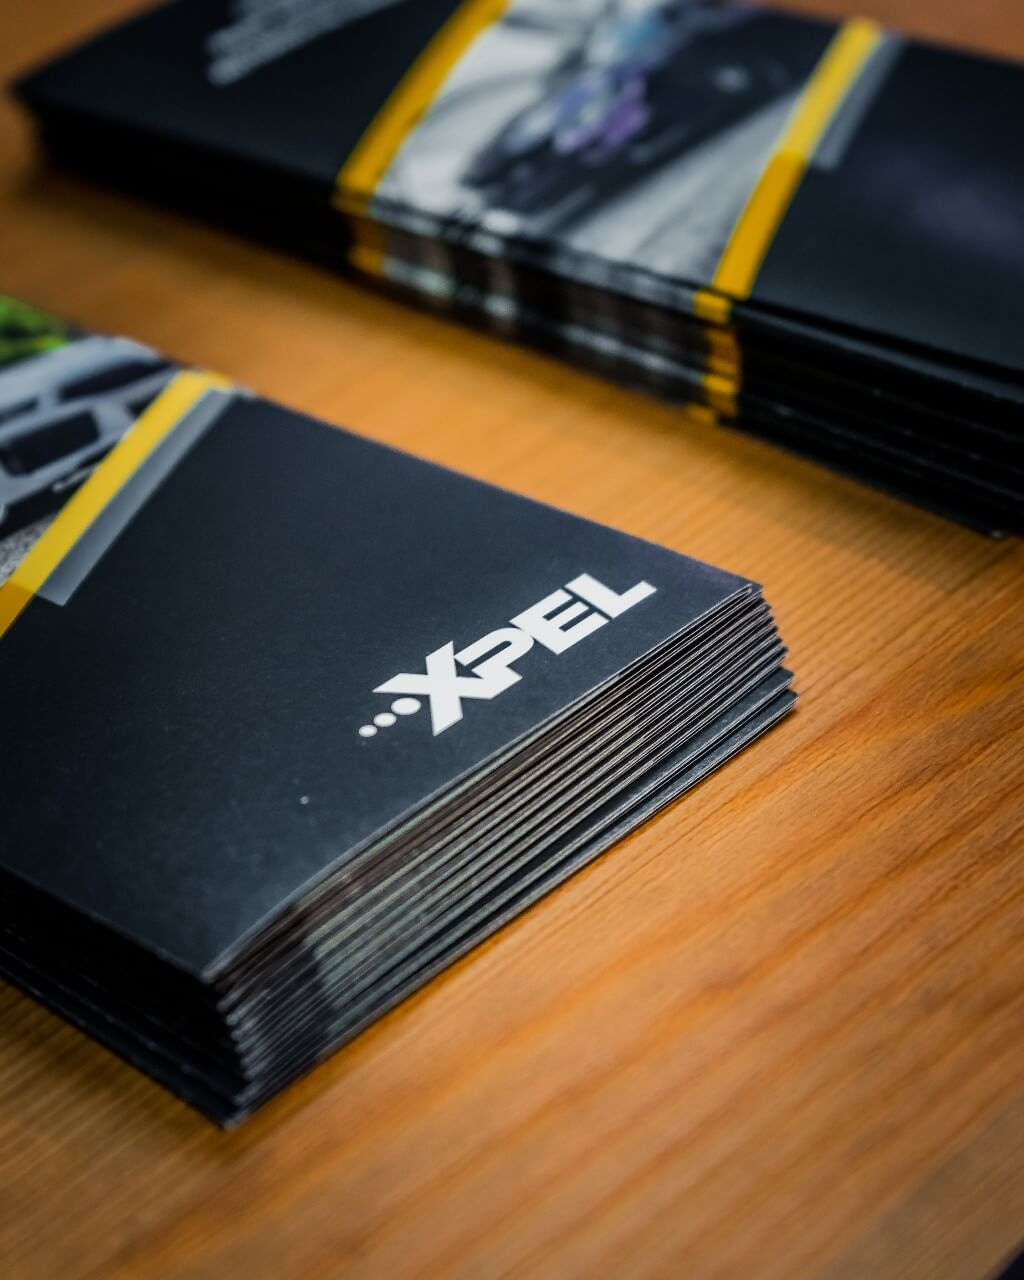 Harick Services offers XPEL